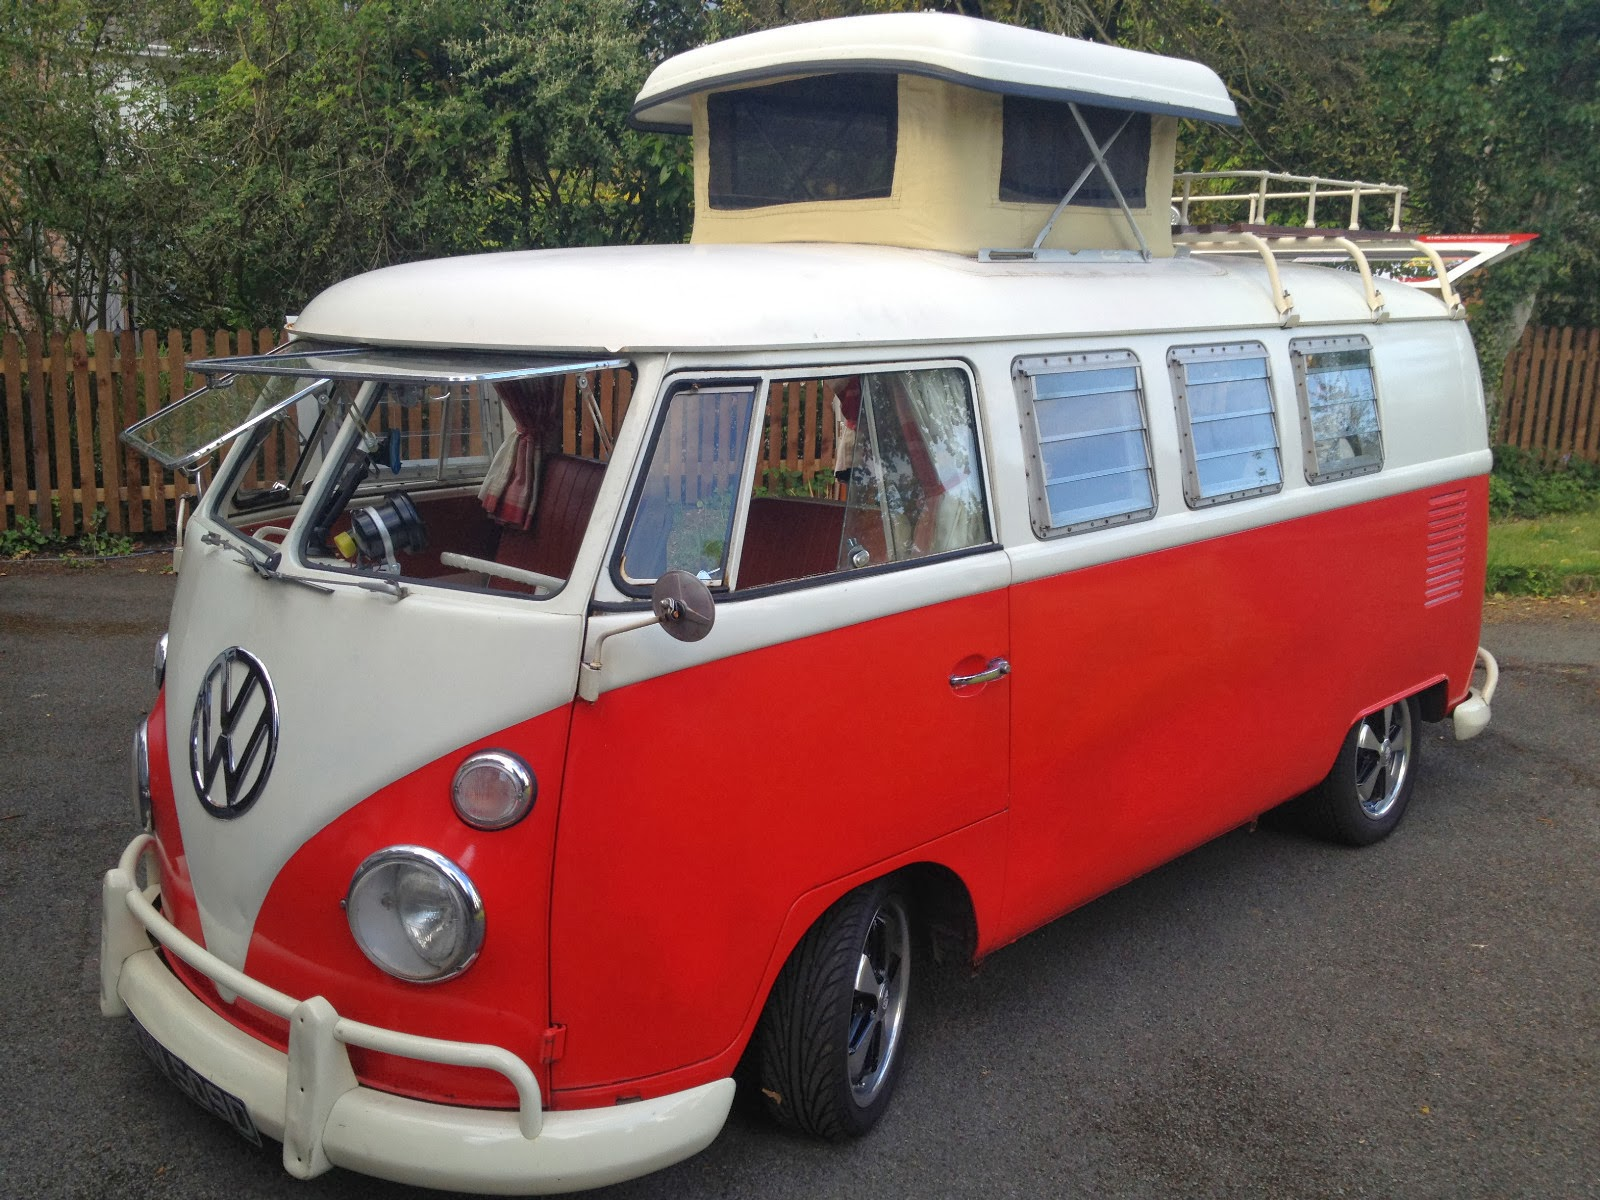 Beautiful Here We Are Selling A1979 Westfalia  Name The Camper Is Being Sold With A 1979 Westfailer Trailer In The Phot And Also Included Is A Genuine Westfalia Bike Rack Over All The Camper Is In A Very Nice Order My Son And I Have Been Restoring